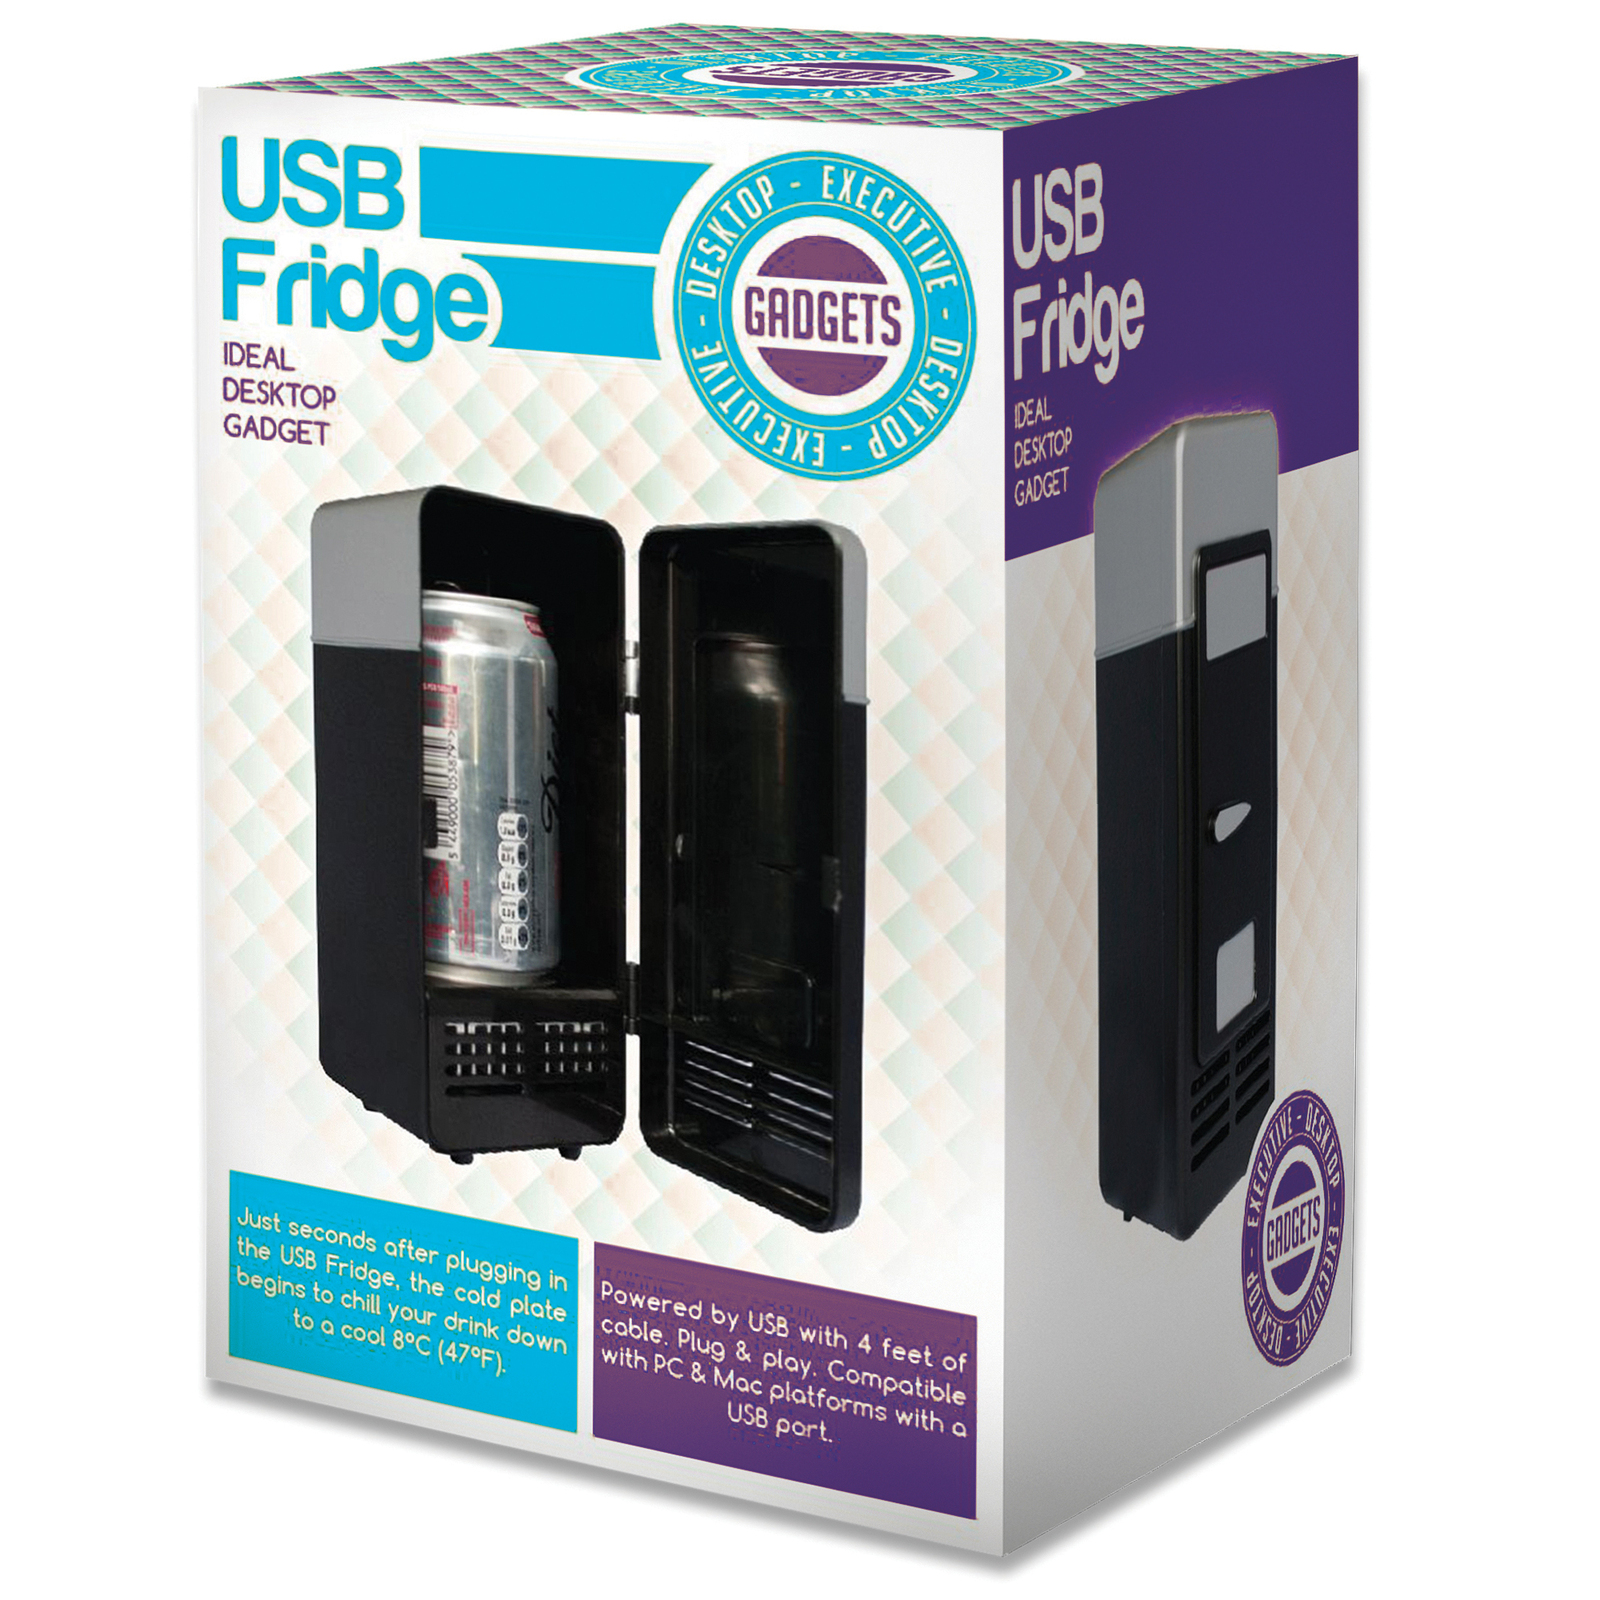 USB Fridge image